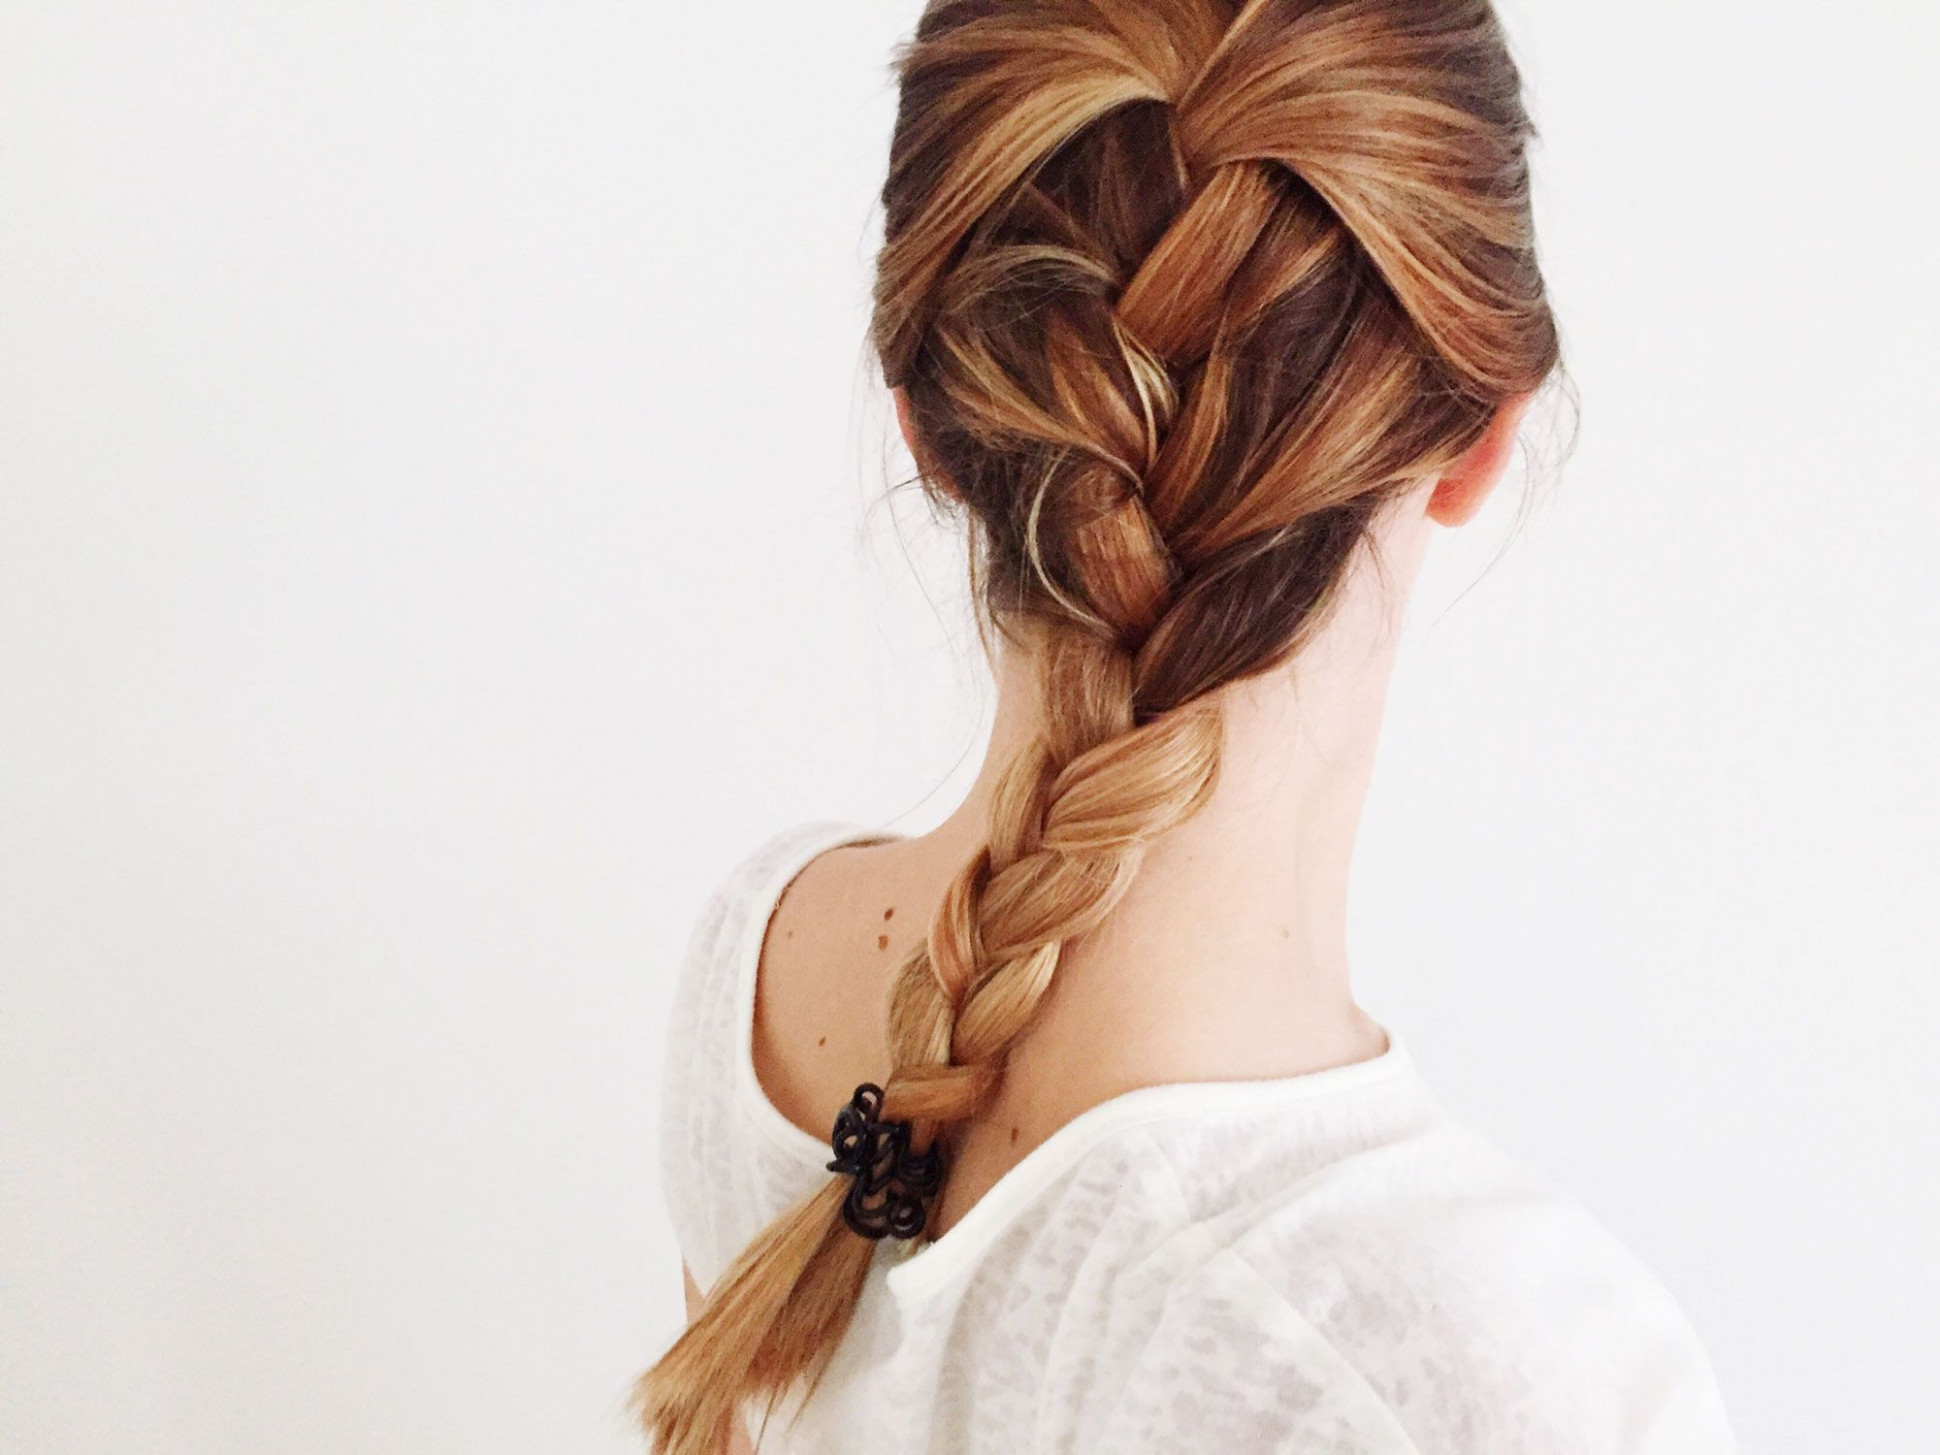 How to French Braid Your Own Hair – Braiding Tutorial for Beginners